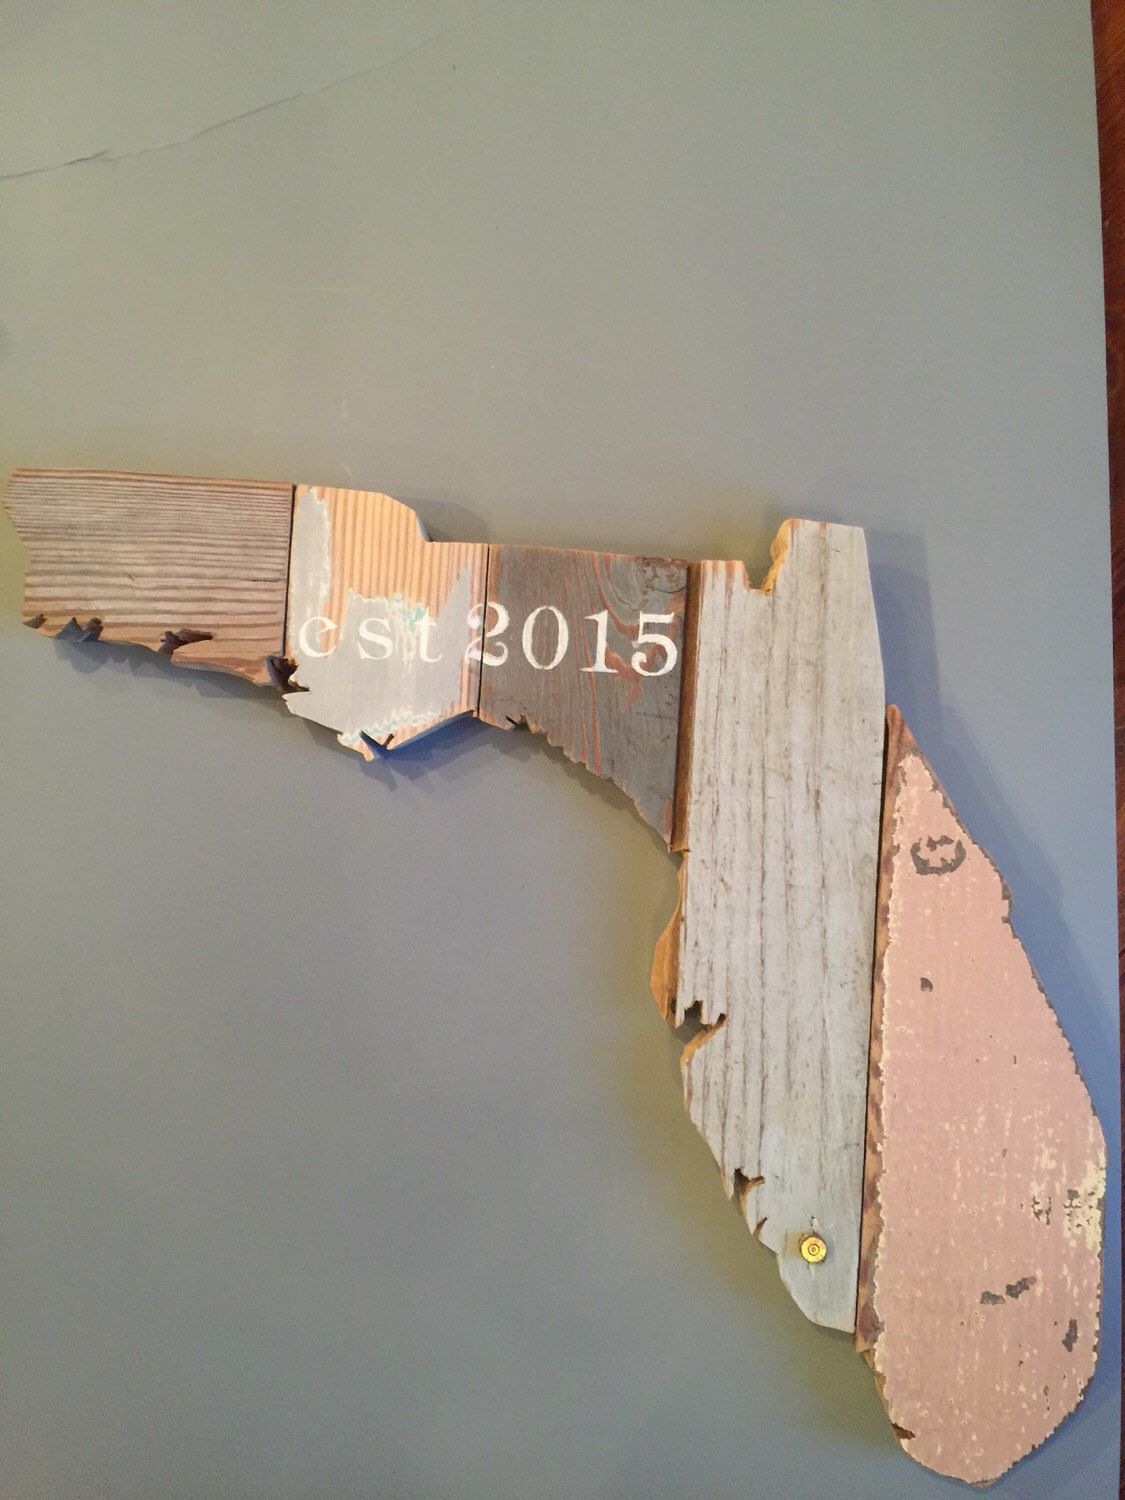 Customizable Wooden State Sign - Hand Painted on Reclaimed Wood - Country  Chic Decor - Florida - Customizable Wooden State Sign - Hand Painted On Reclaimed Wood